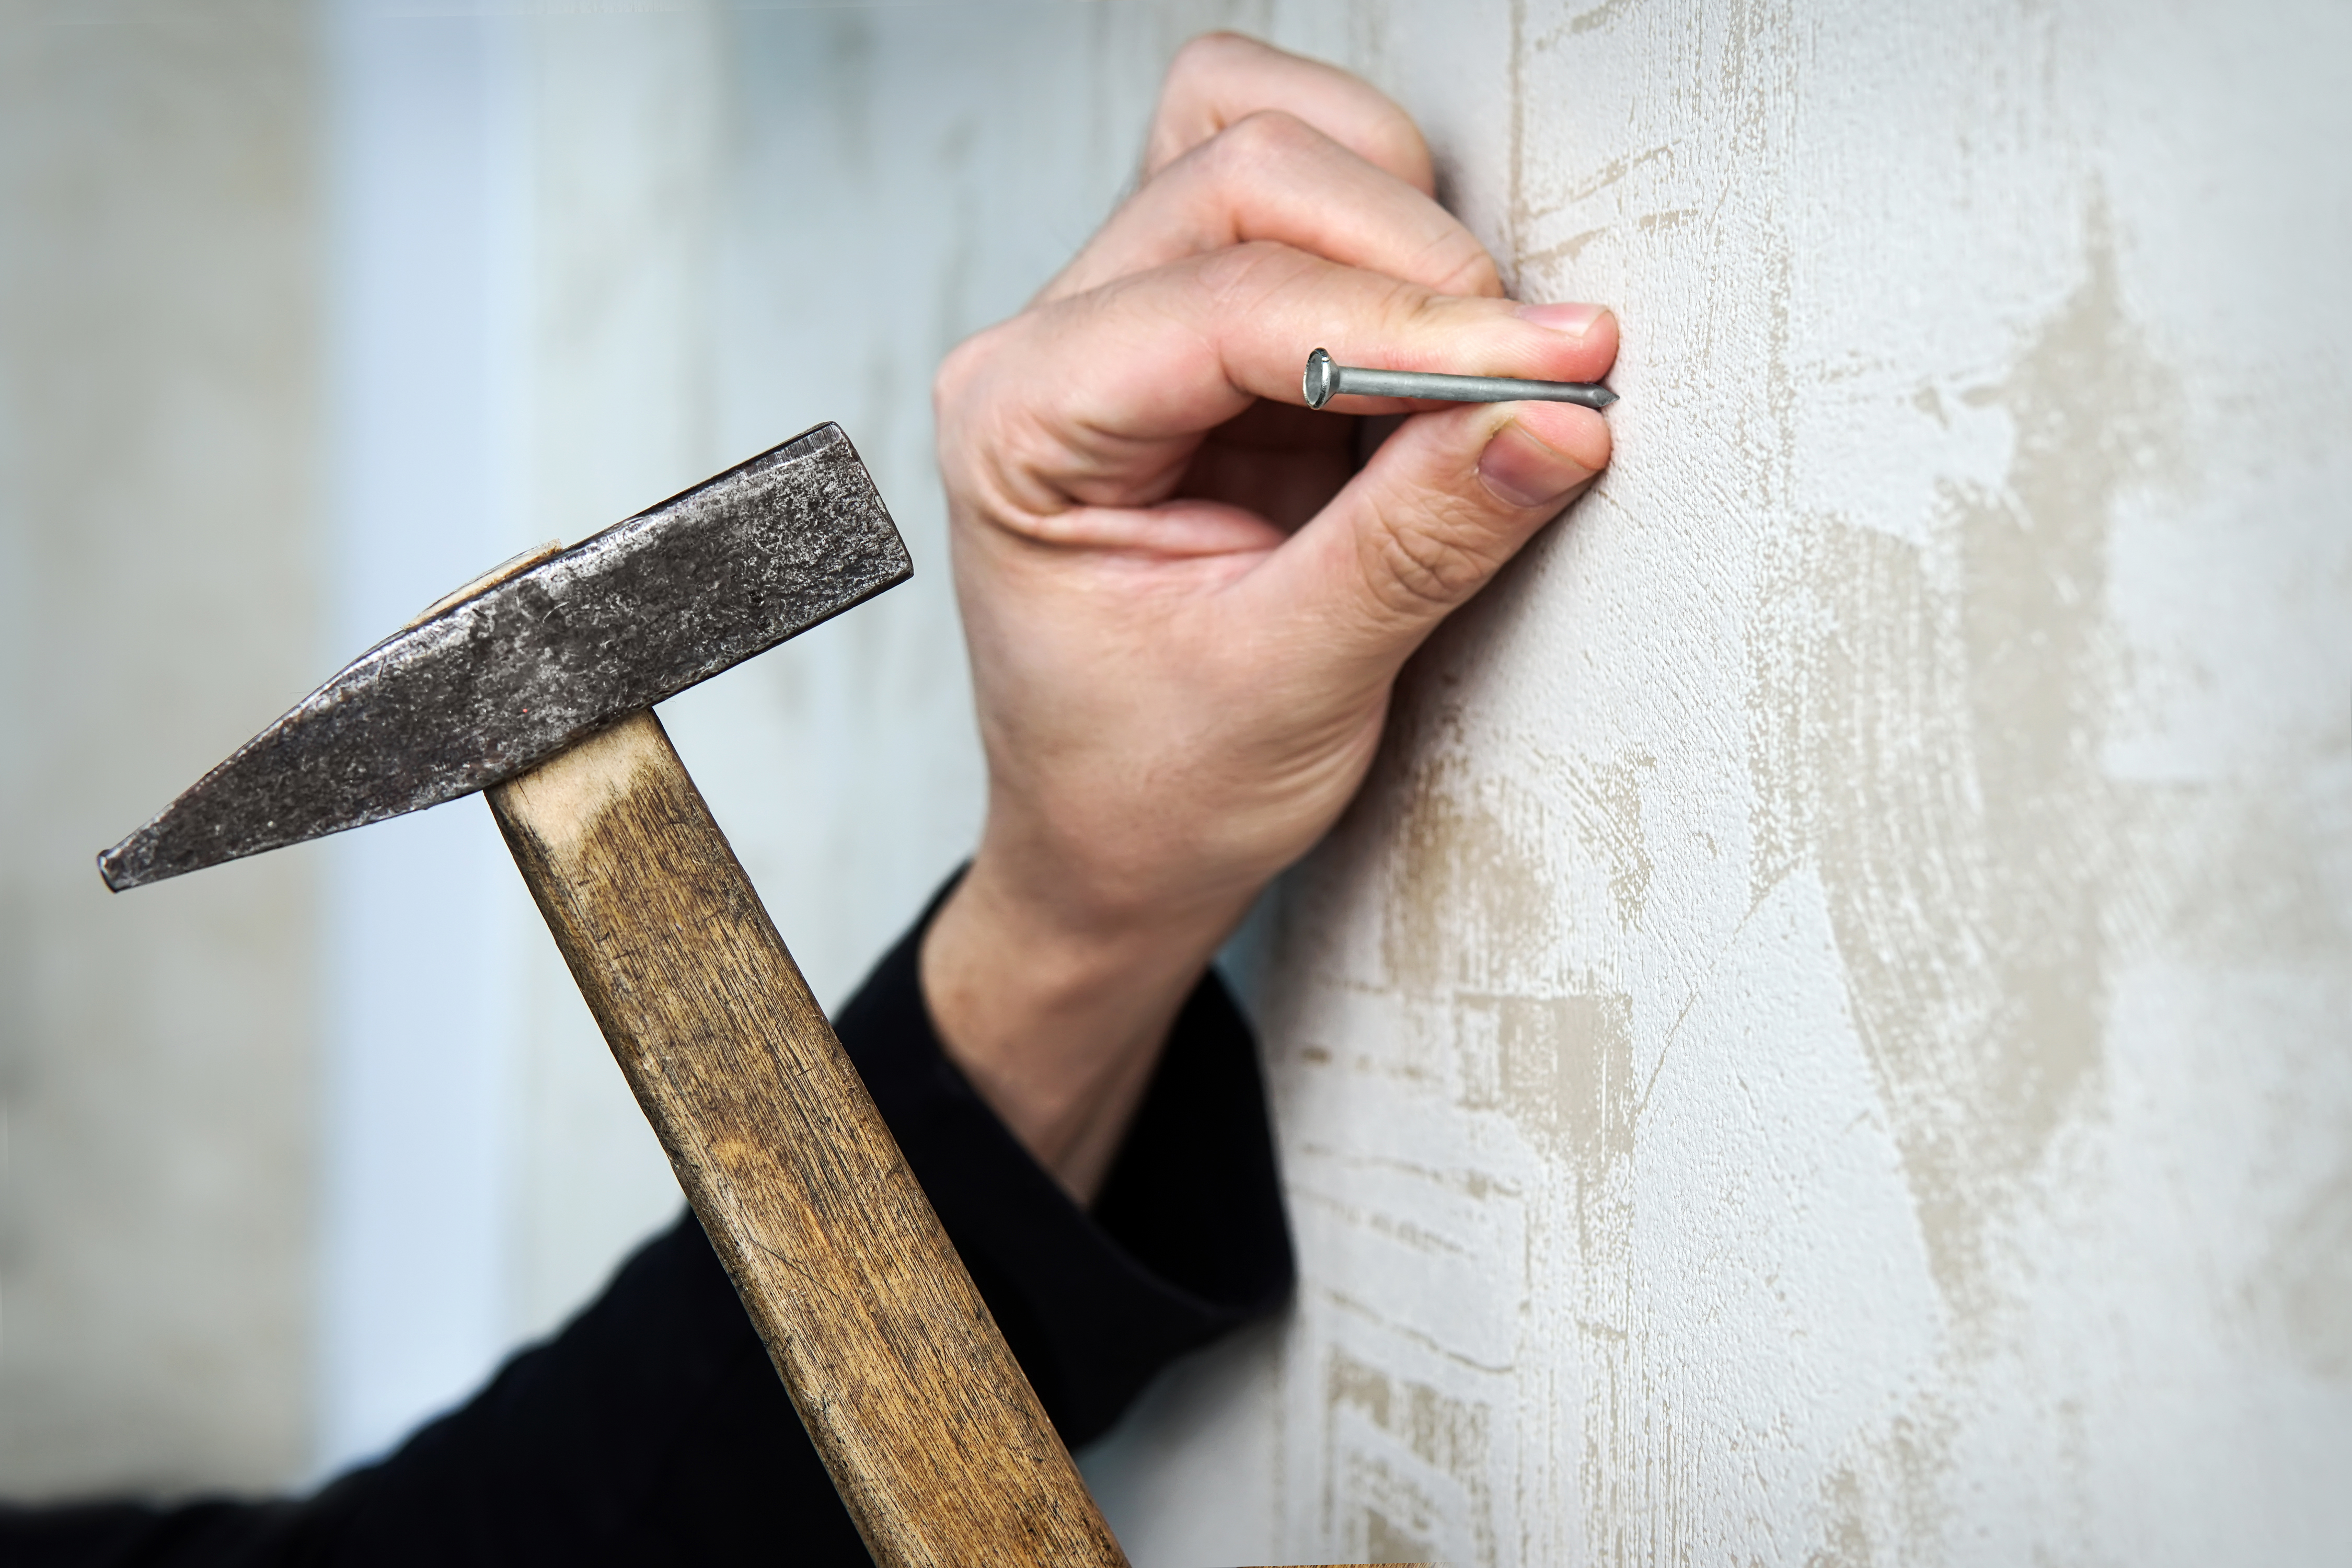 What Size Nails for Framing Walls? | Home Guides | SF Gate Nailing Interior Walls Mobile Home on mobile home hvac, mobile home stairs, mobile home stud walls, mobile home basements, mobile home bathrooms, replace mobile home walls, mobile home curtains, mobile home exterior walls, mobile home windows, framing mobile home walls,